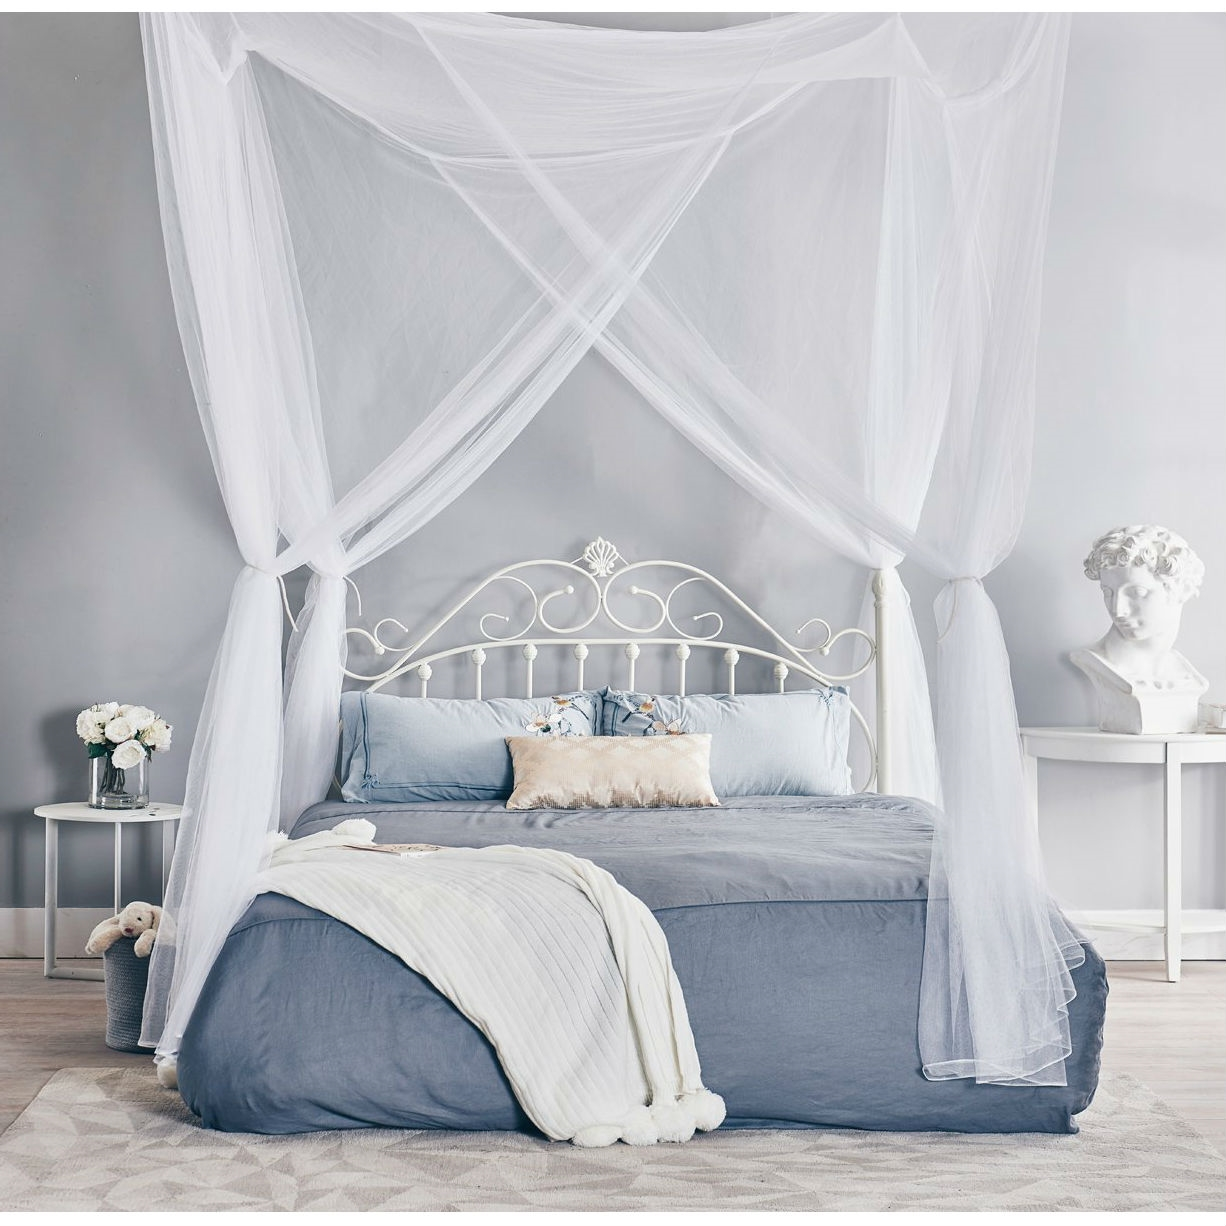 White Four Poster King Bed White 4 Post Bed Netting Mosquito Net For Canopy Beds Fits Size Full Queen And King